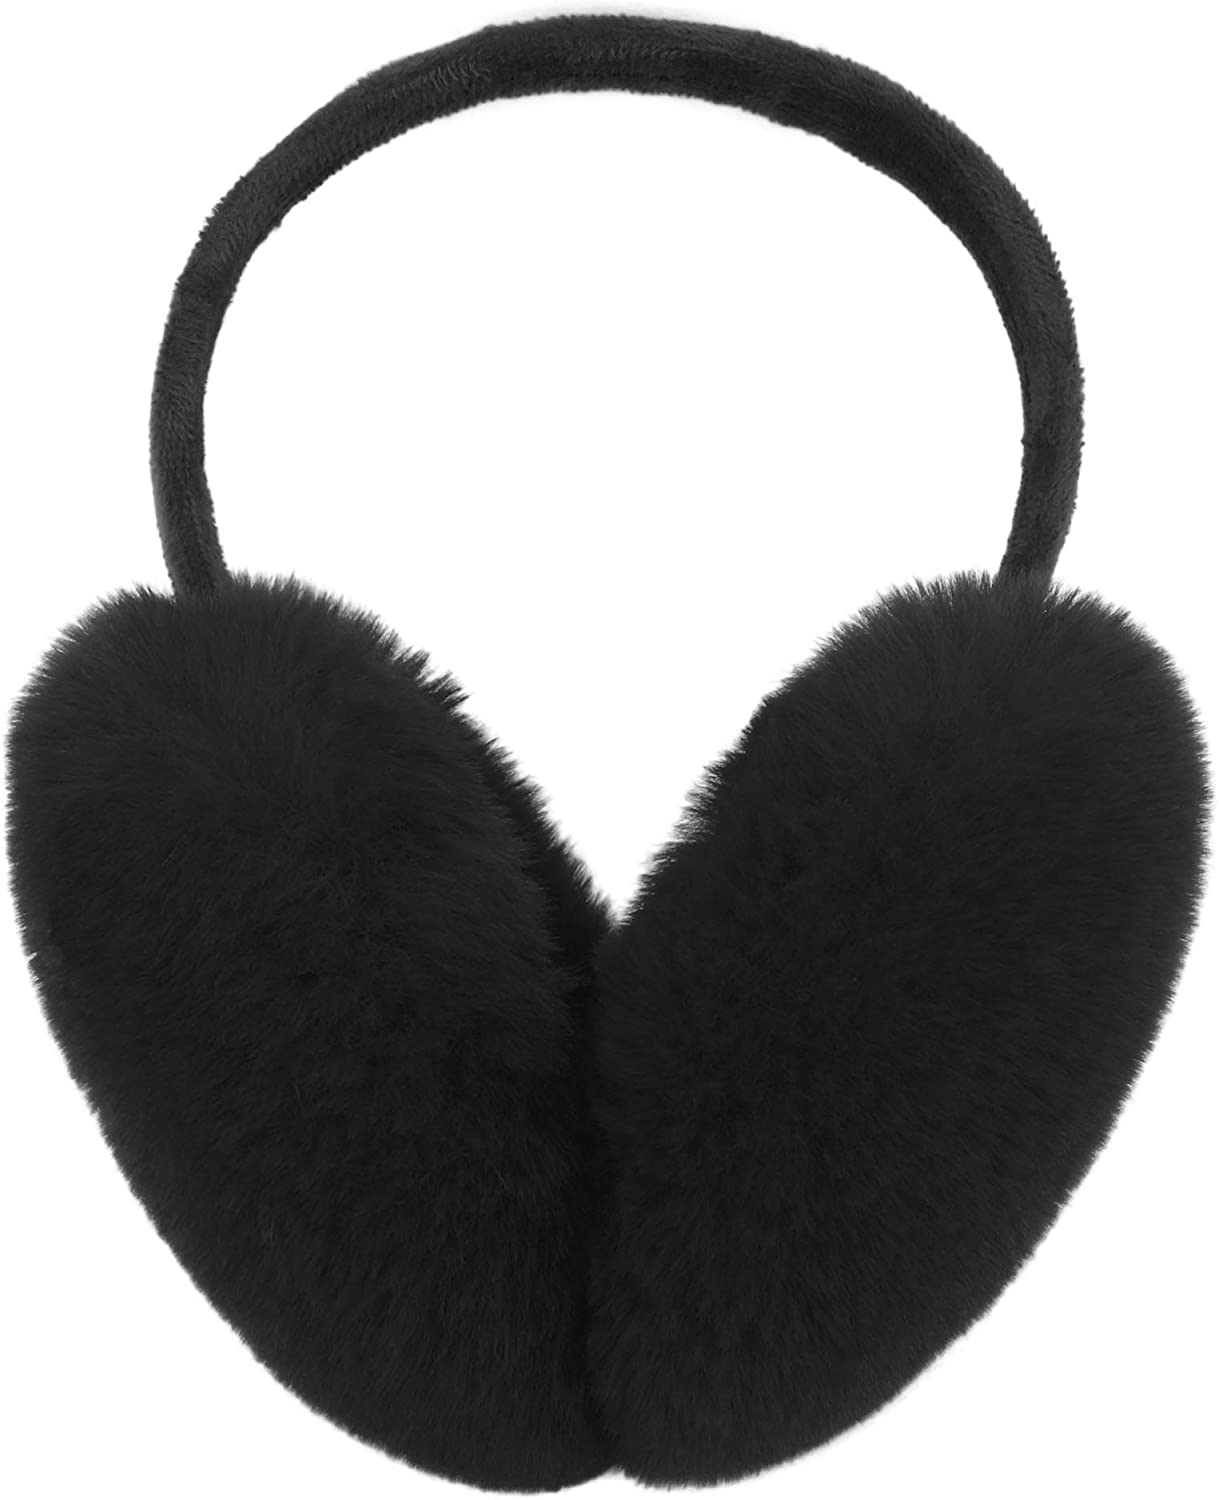 Be Cool Alpaca Black White Quote Winter Earmuff Ear Warmer Faux Fur Foldable Plush Outdoor Gift